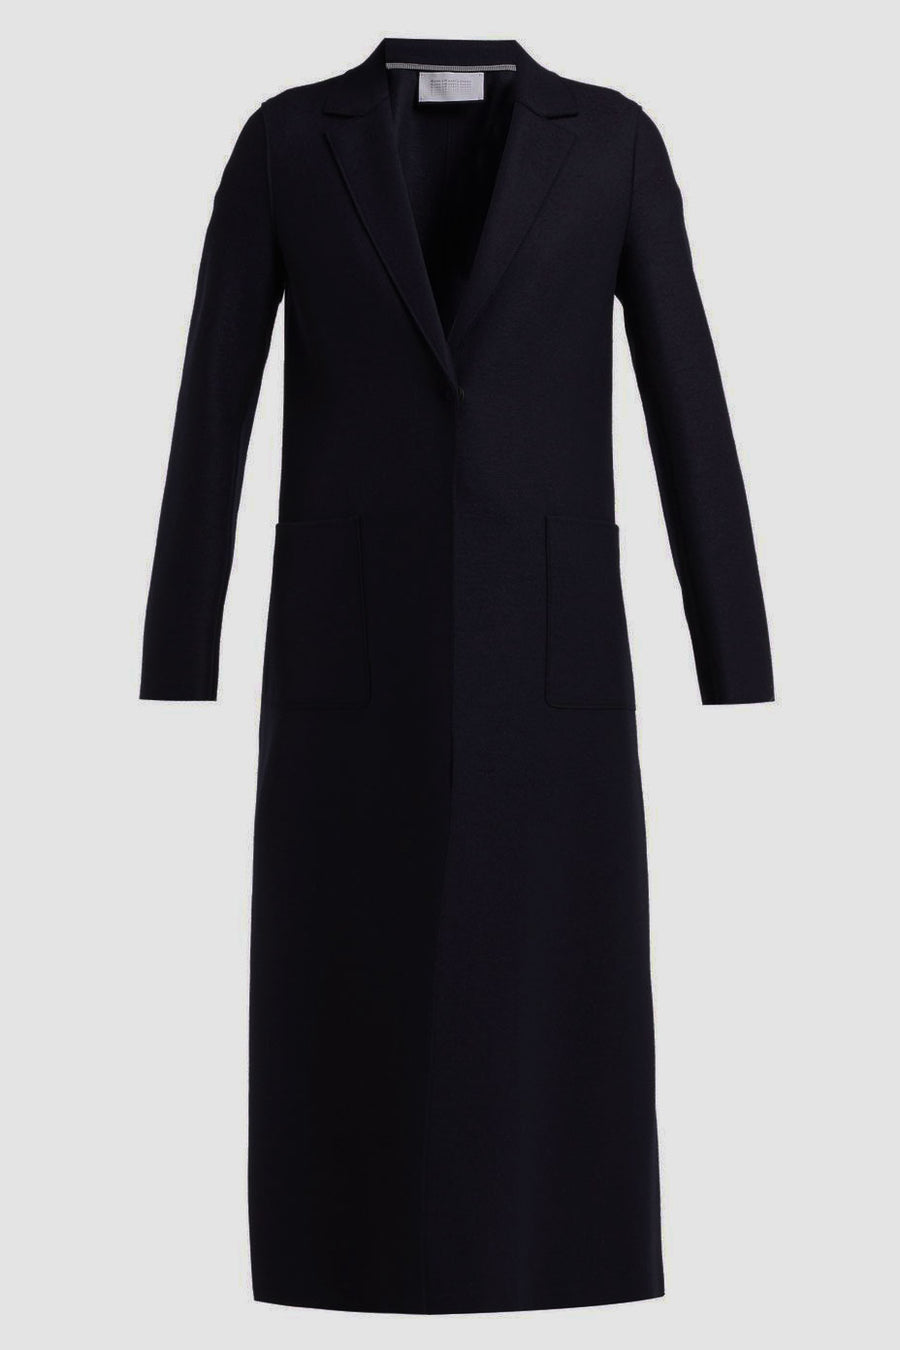 Long Vented Coat Light Pressed Wool - Black